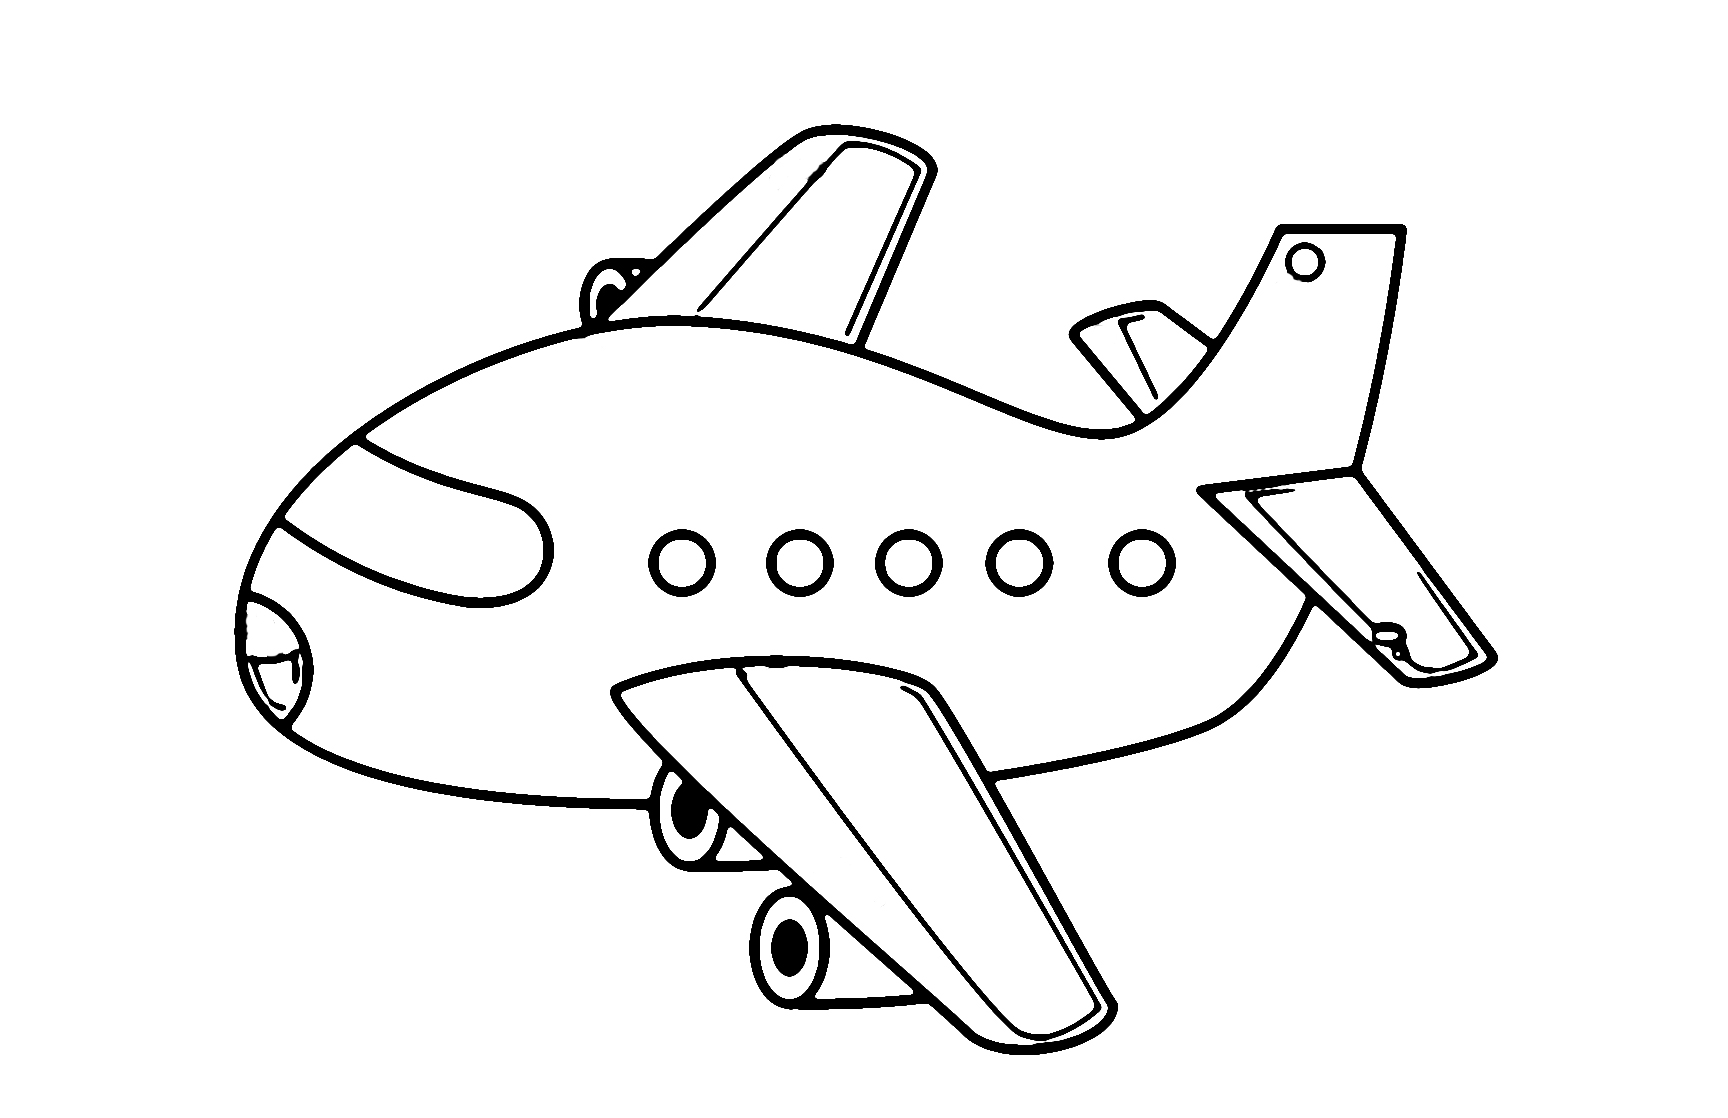 coloring page airplane free easy to print airplane coloring pages tulamama airplane page coloring